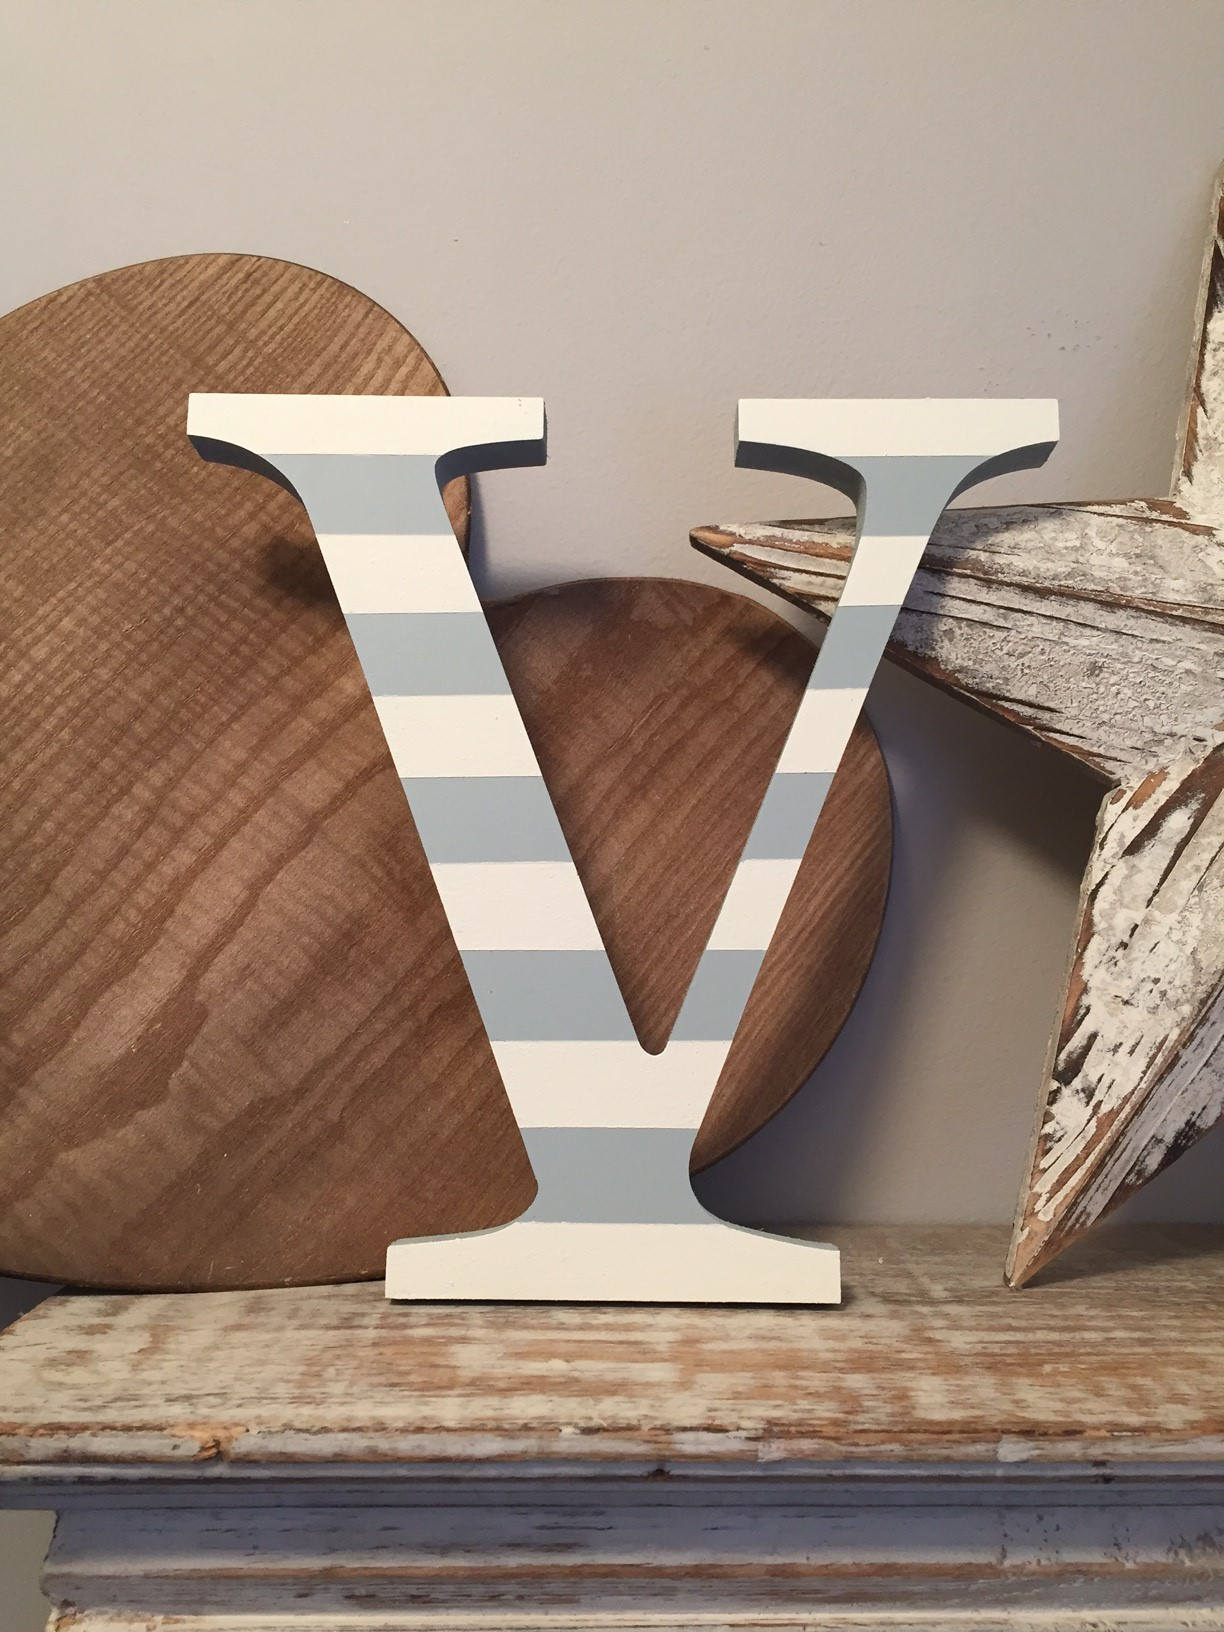 Painted Wooden Letter V Large Georgia Font 50cm High Almost 20